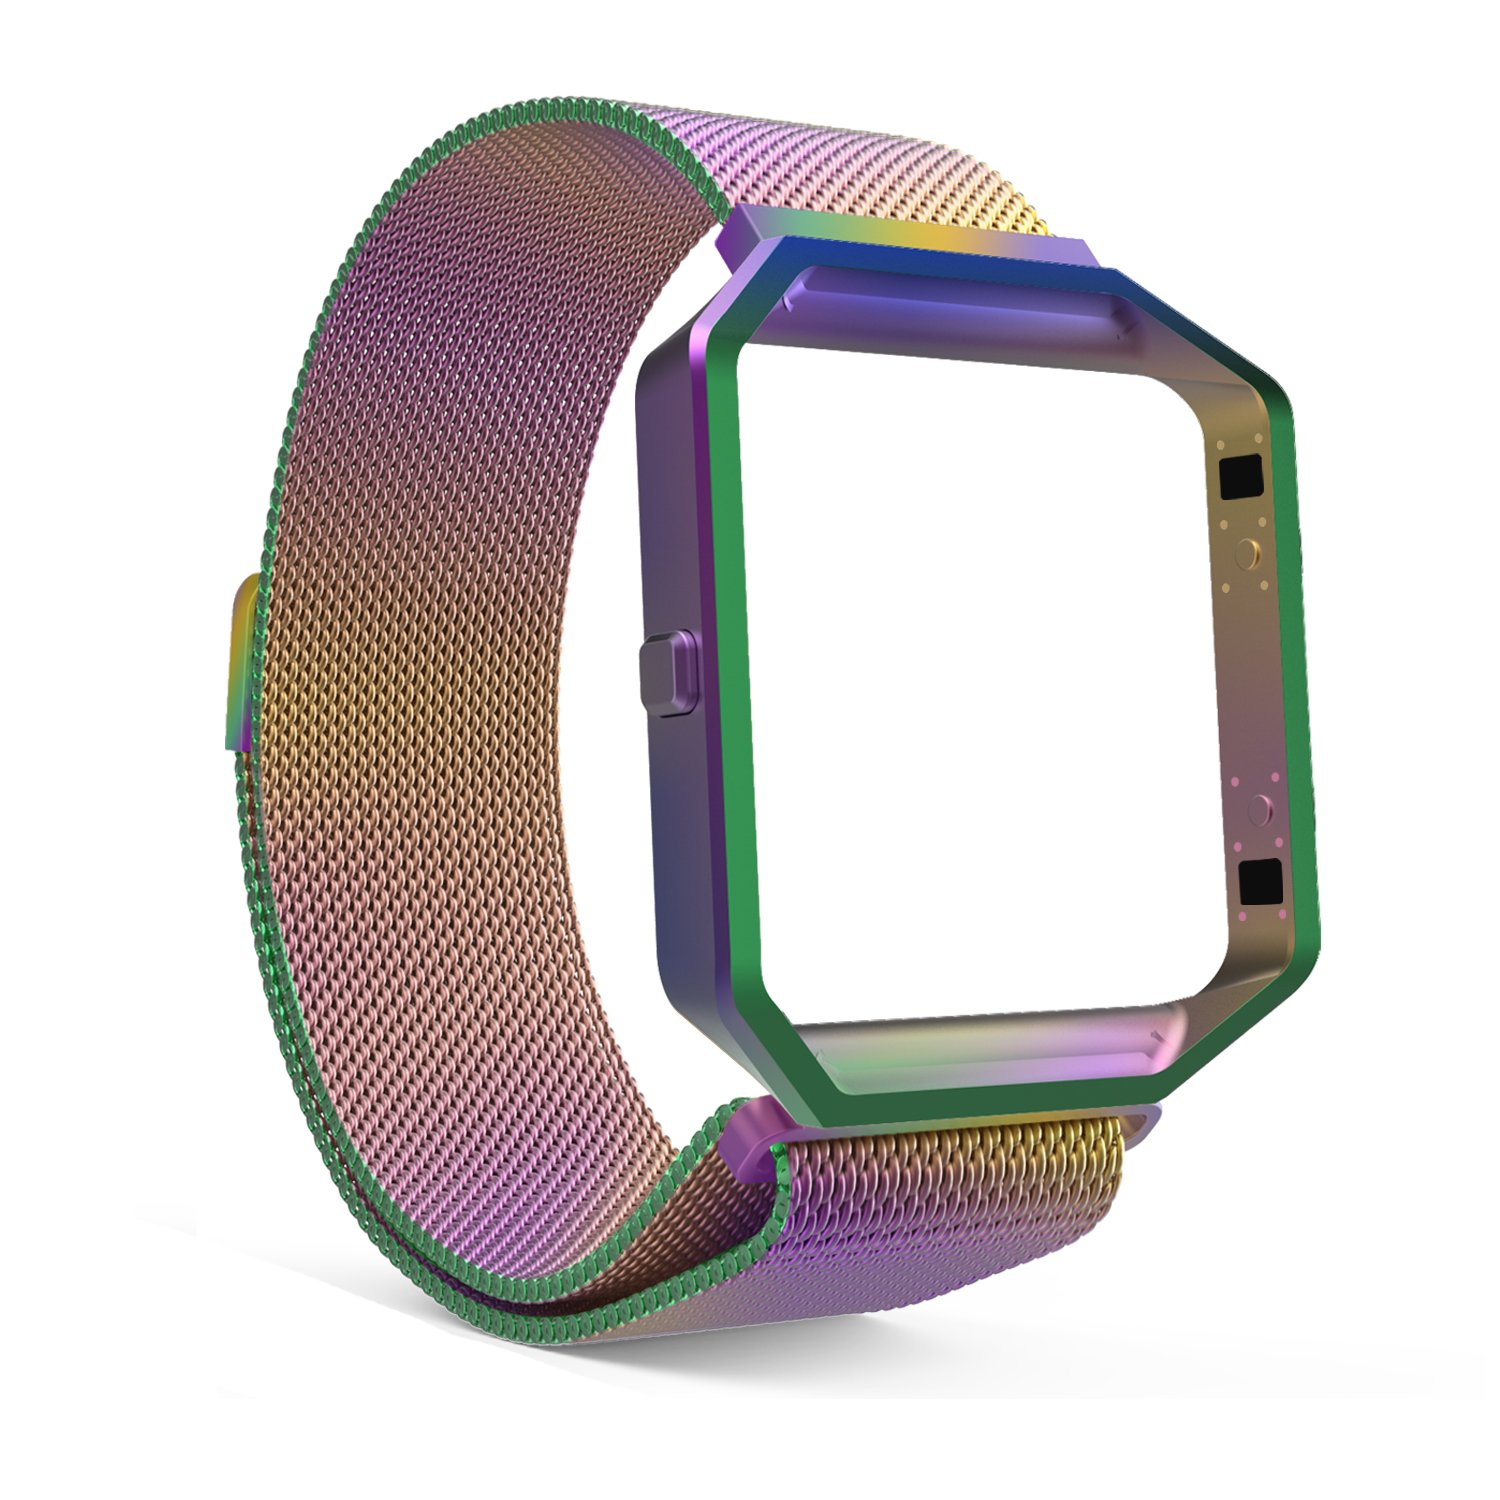 Fitbit Blaze Accessories Band, MoKo Metal Frame Housing + Milanese Loop Mesh Stainless Steel Bracelet Strap Band with Magnet Lock for Fitbit Blaze Smart Fitness Watch - COLORFUL